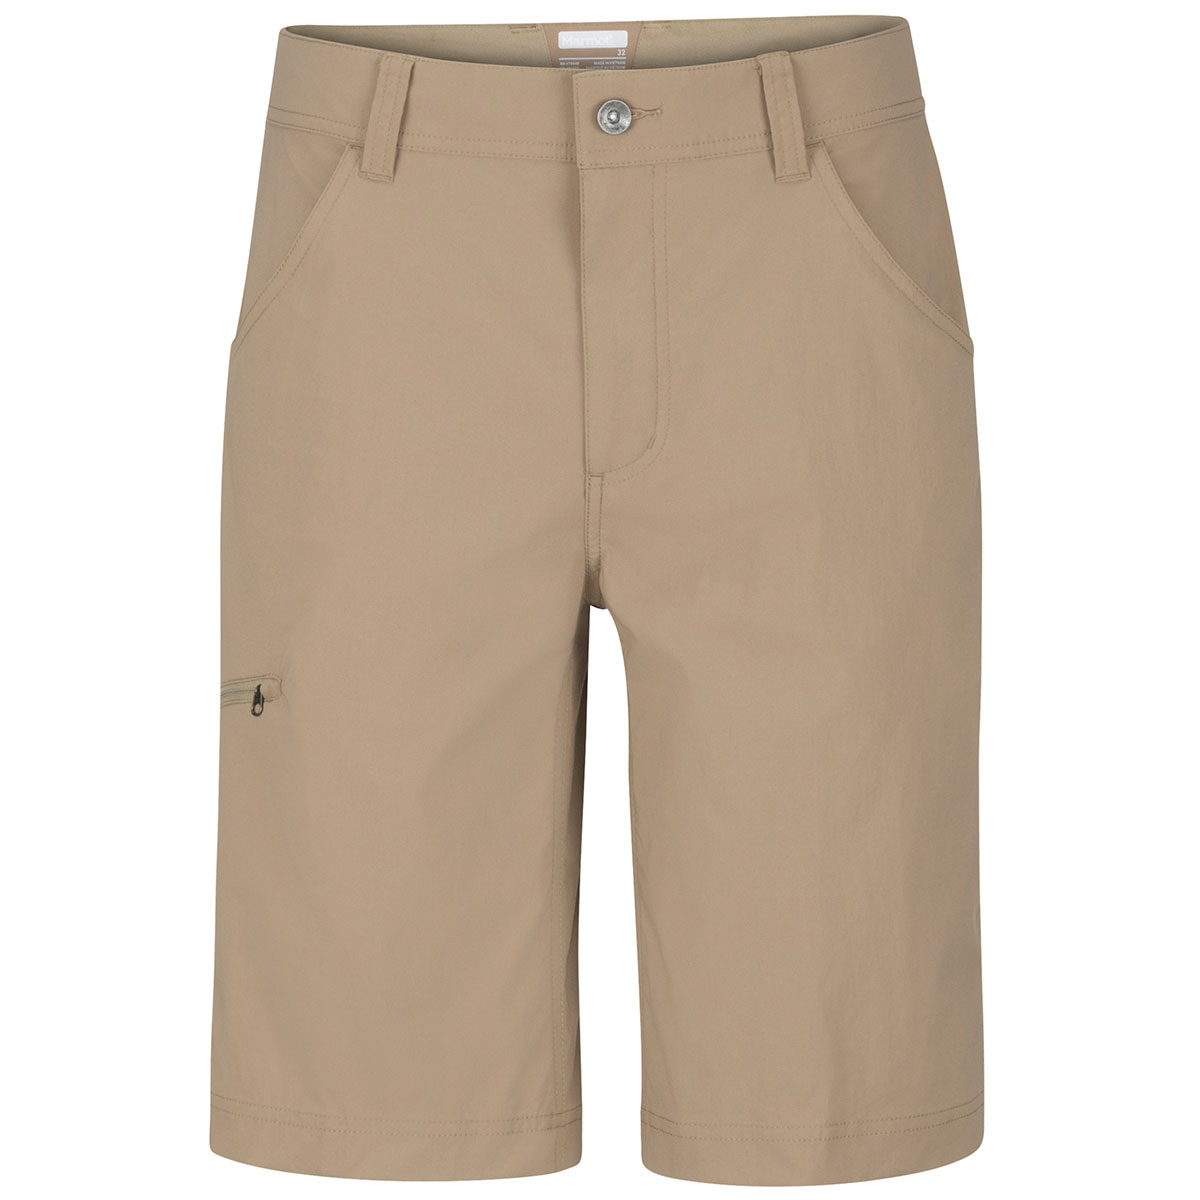 Marmot Men's Arch Rock Shorts - Brown, 32